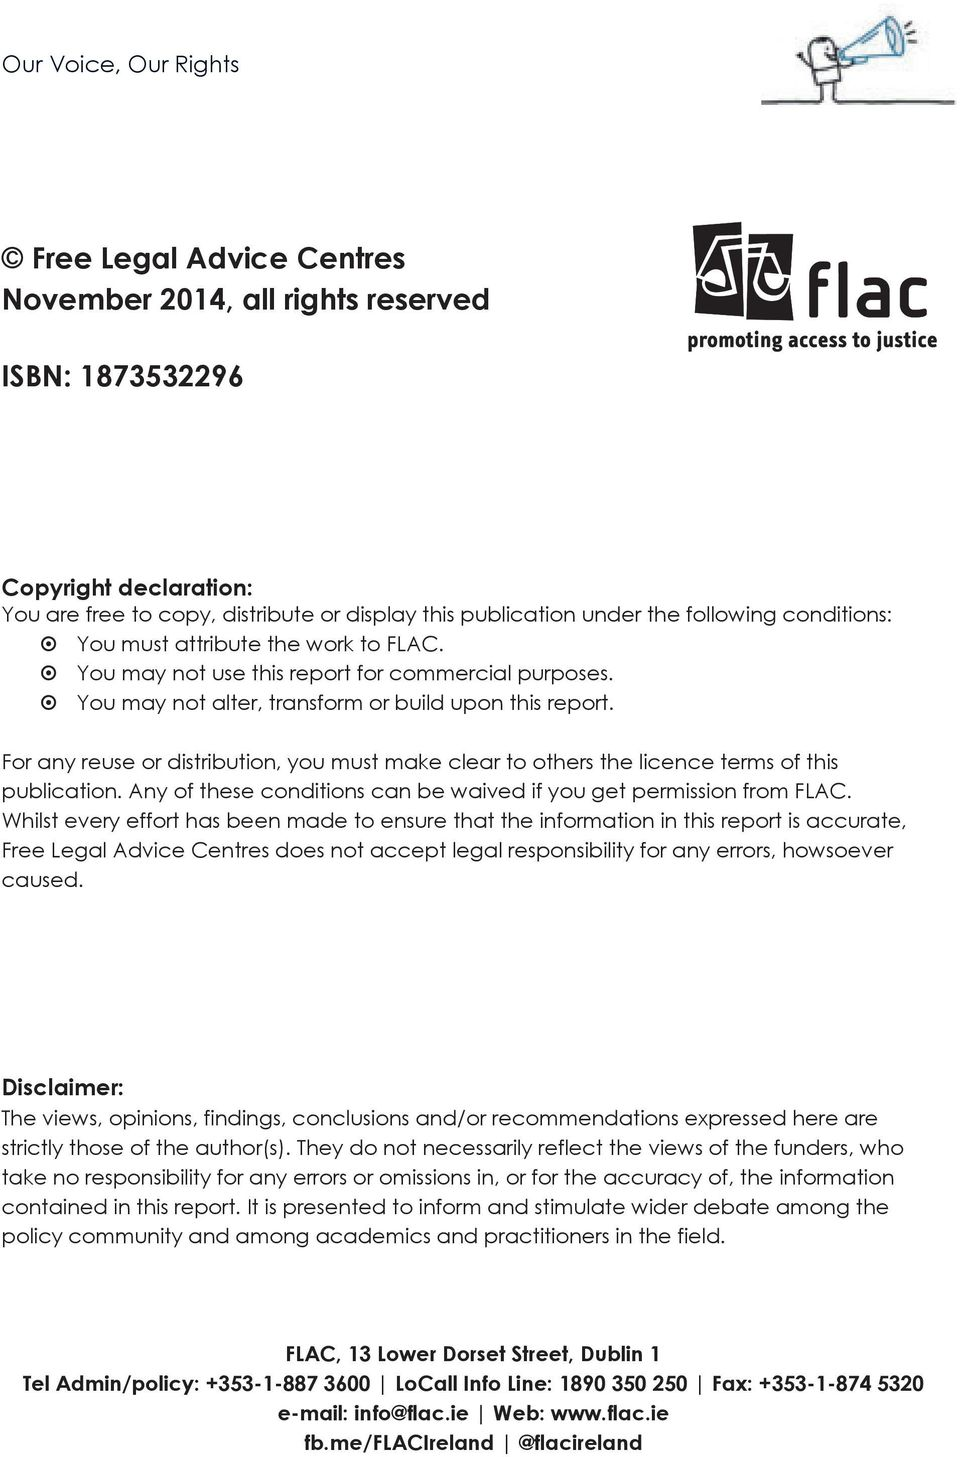 For any reuse or distribution, you must make clear to others the licence terms of this publication. Any of these conditions can be waived if you get permission from FLAC.